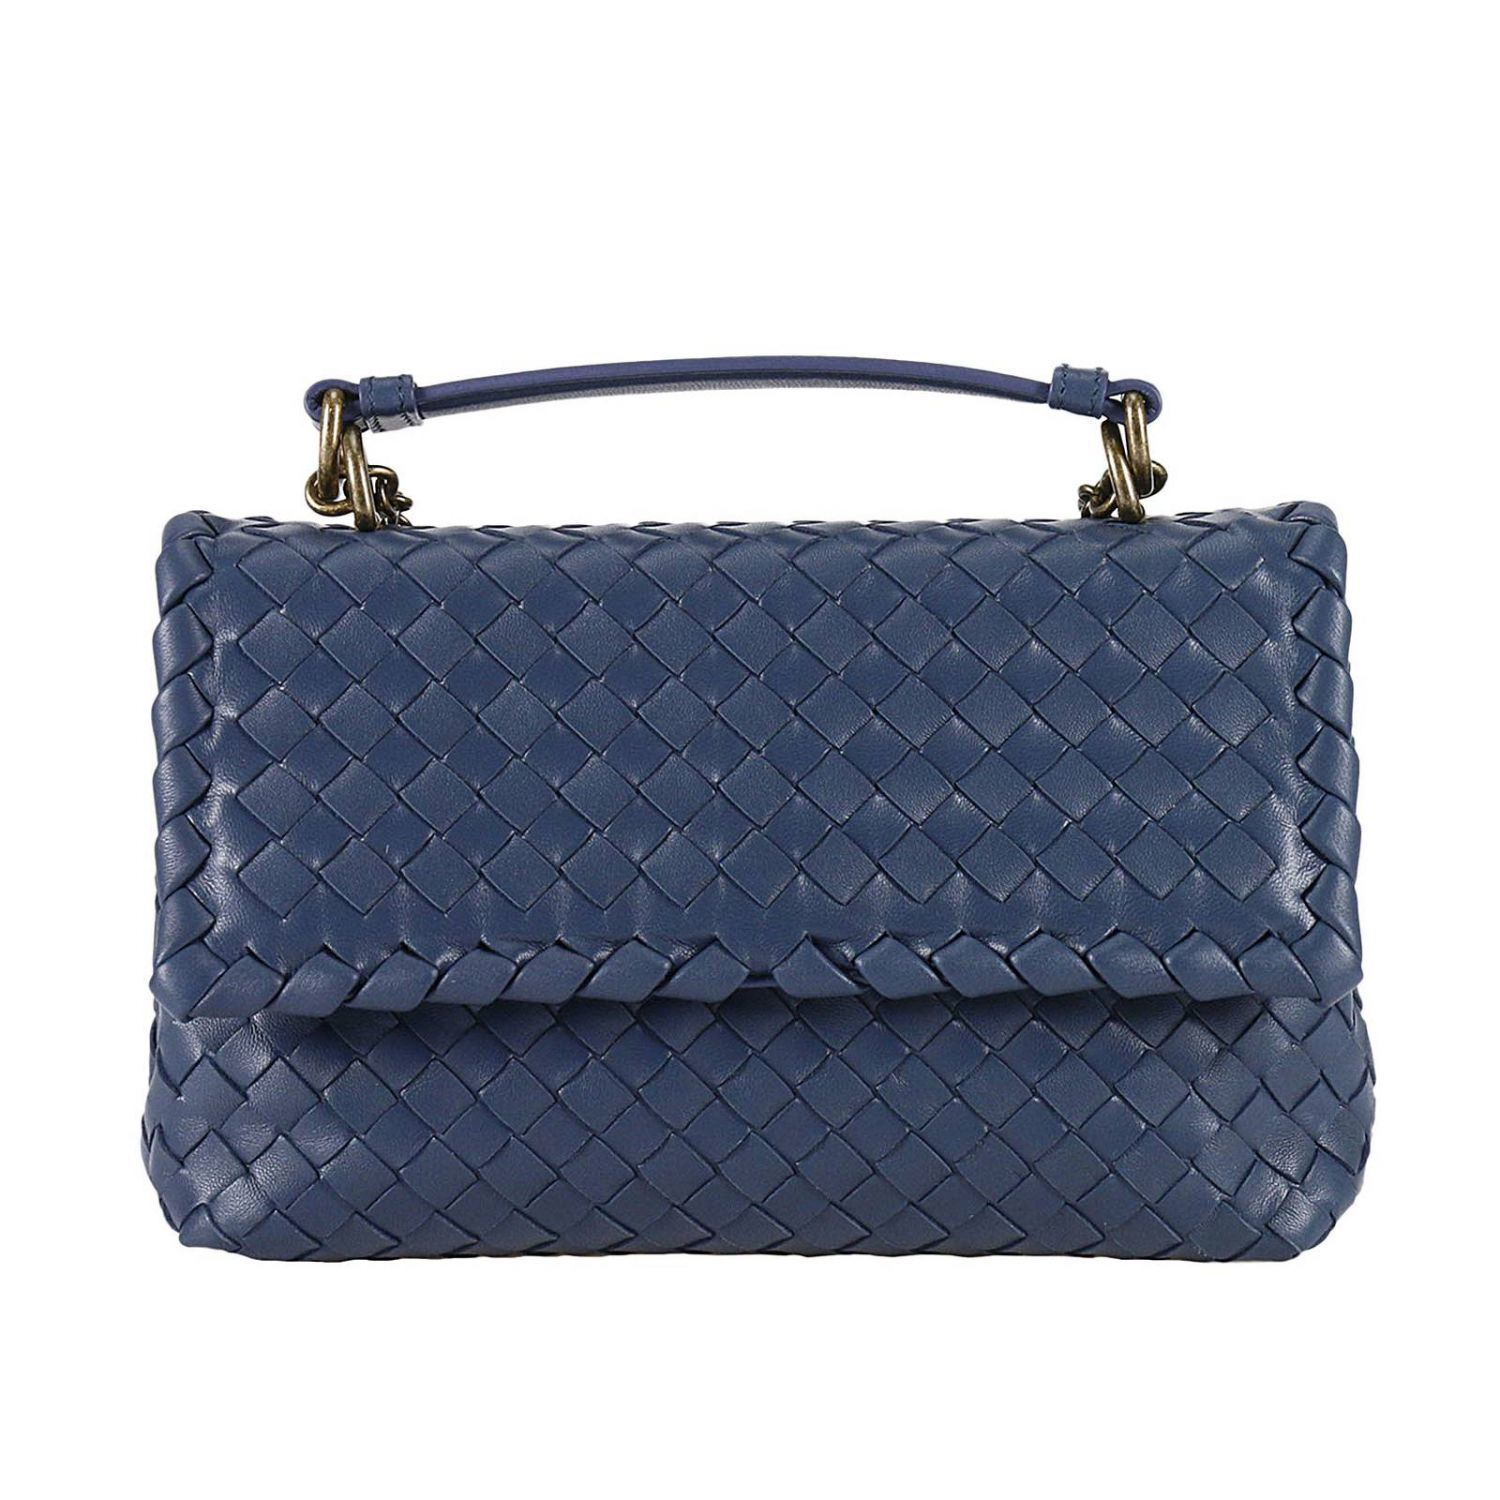 Mini Bag Shoulder Bag Women Bottega Veneta